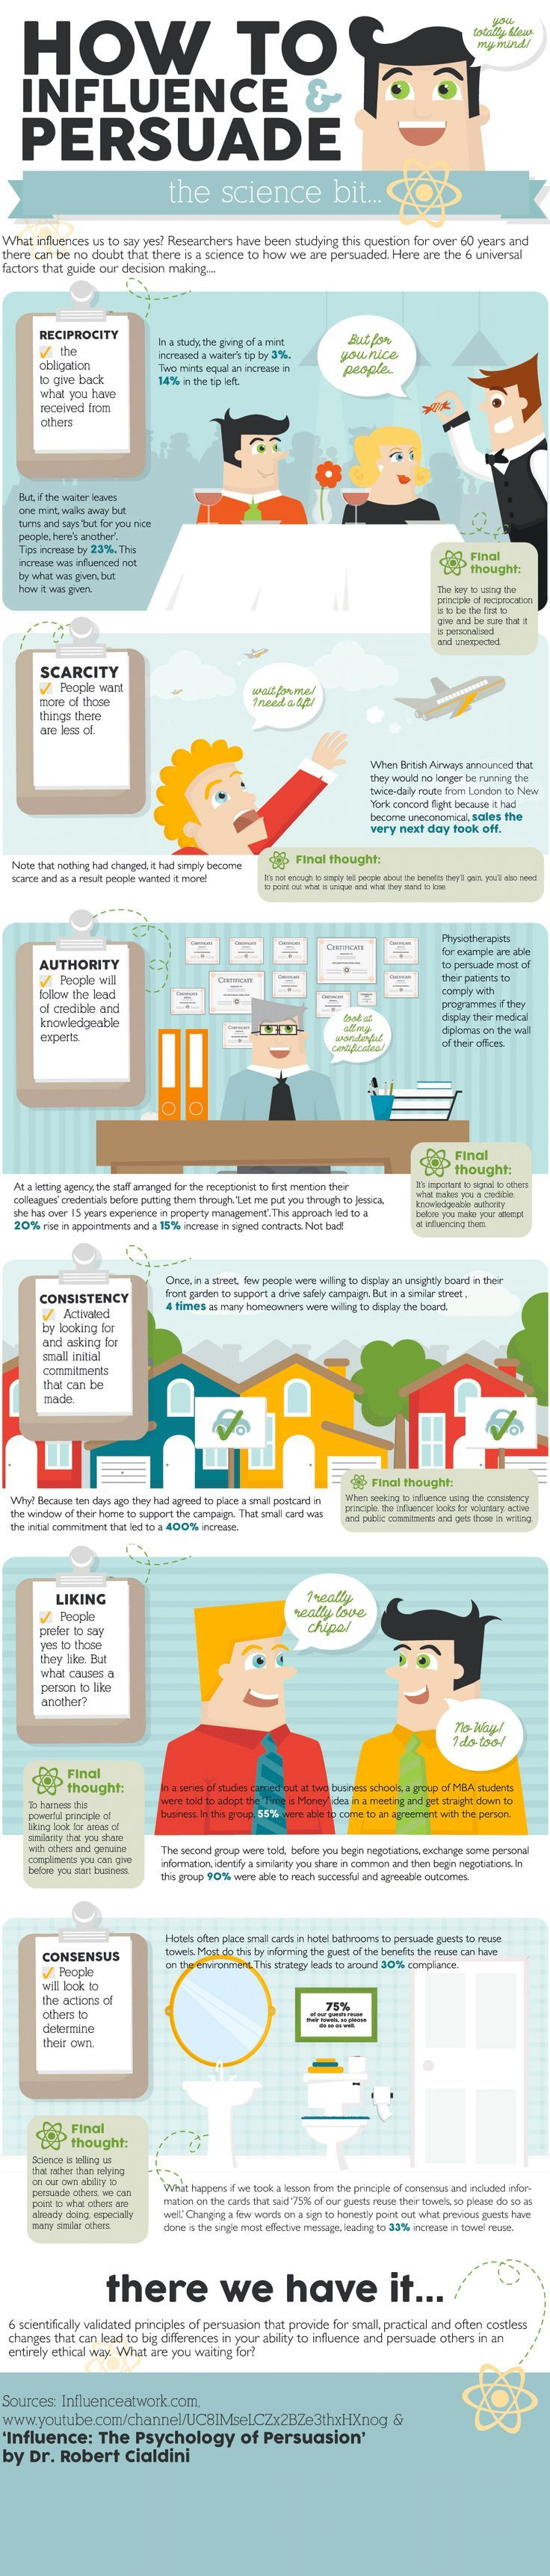 The 6 Scientific Principles Behind Influence and Persuasion #Infographic